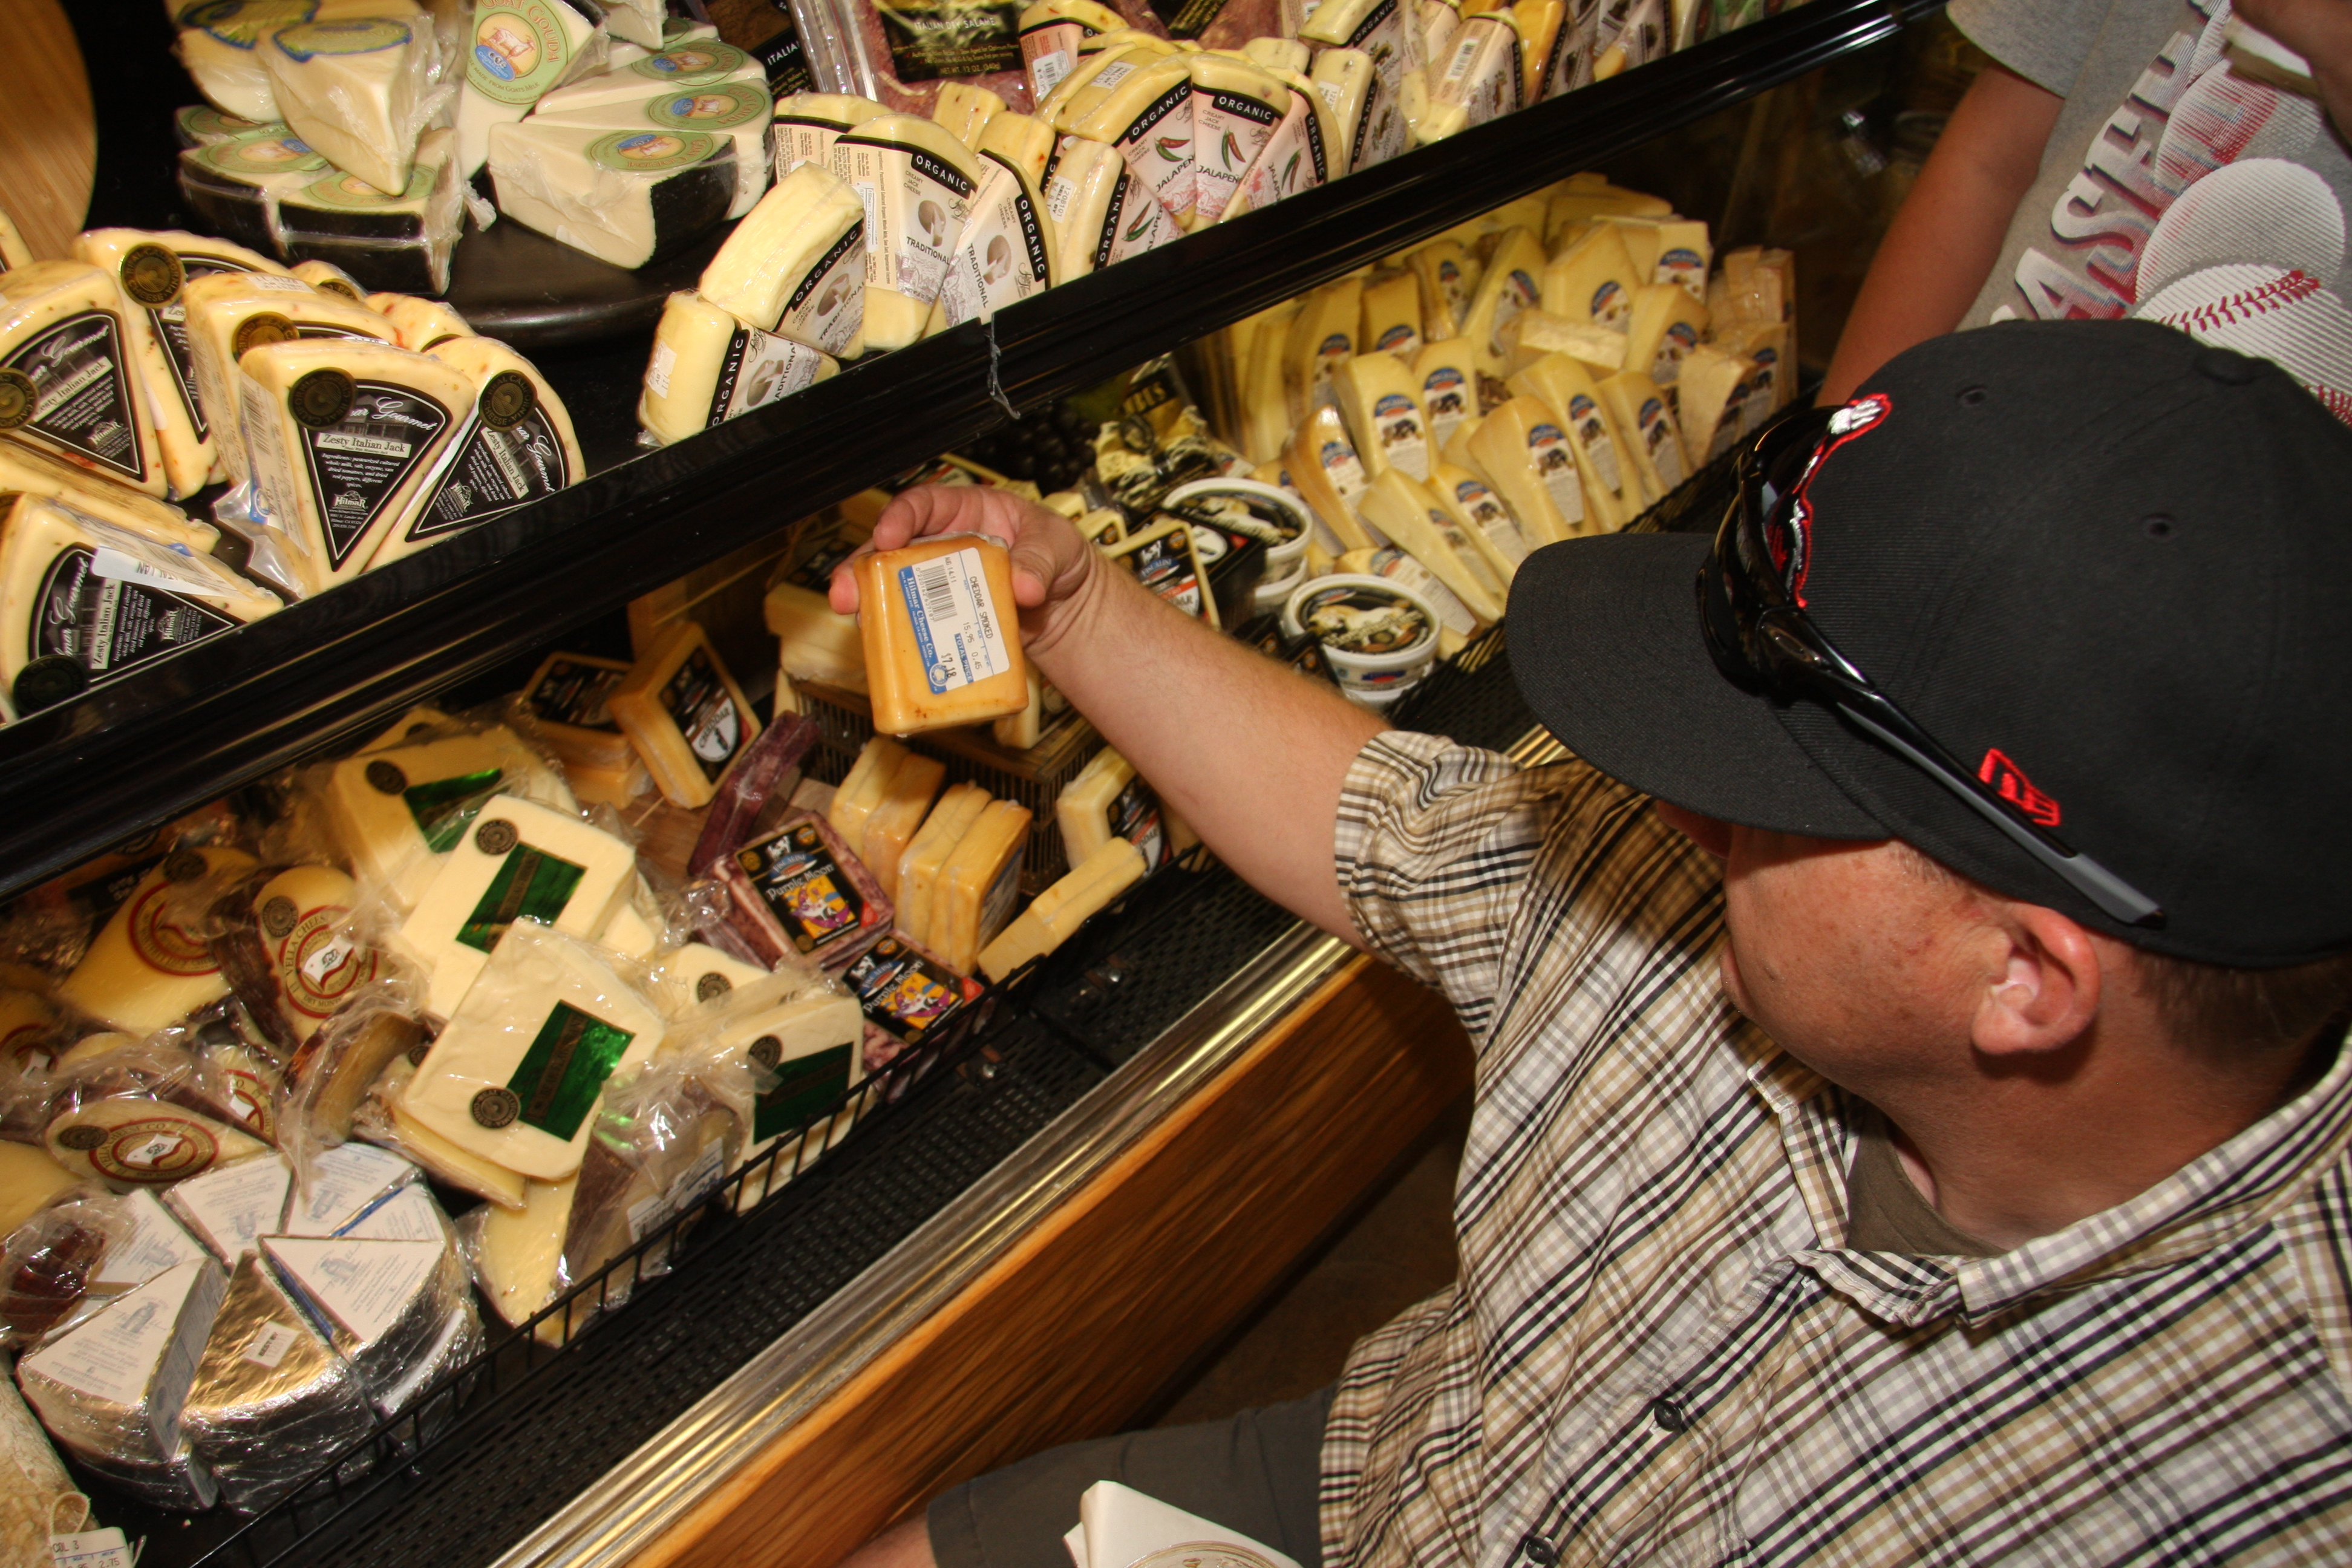 Dairy farmer Ray Prock selects good cheeses